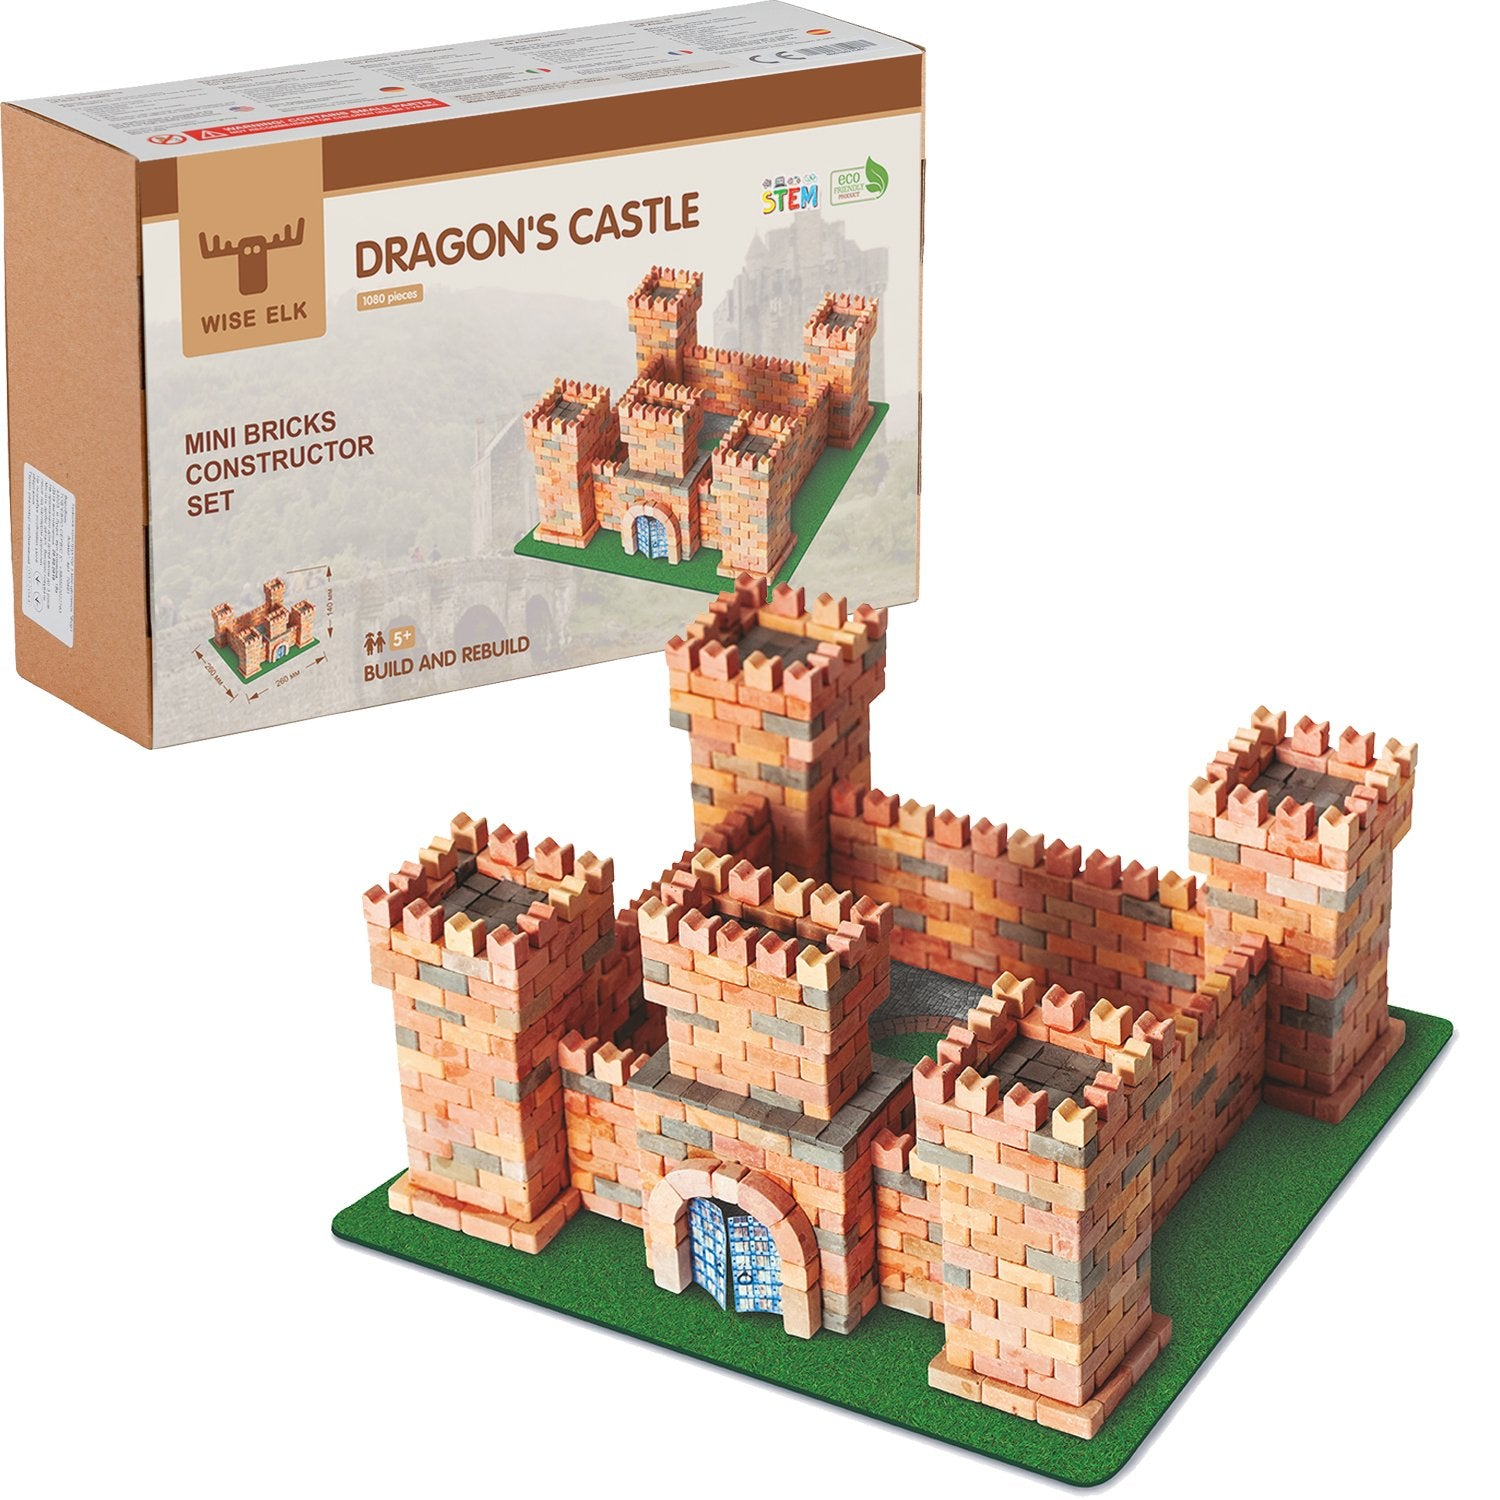 Wise Elk™ Dragon's Castle | 1080 pcs.